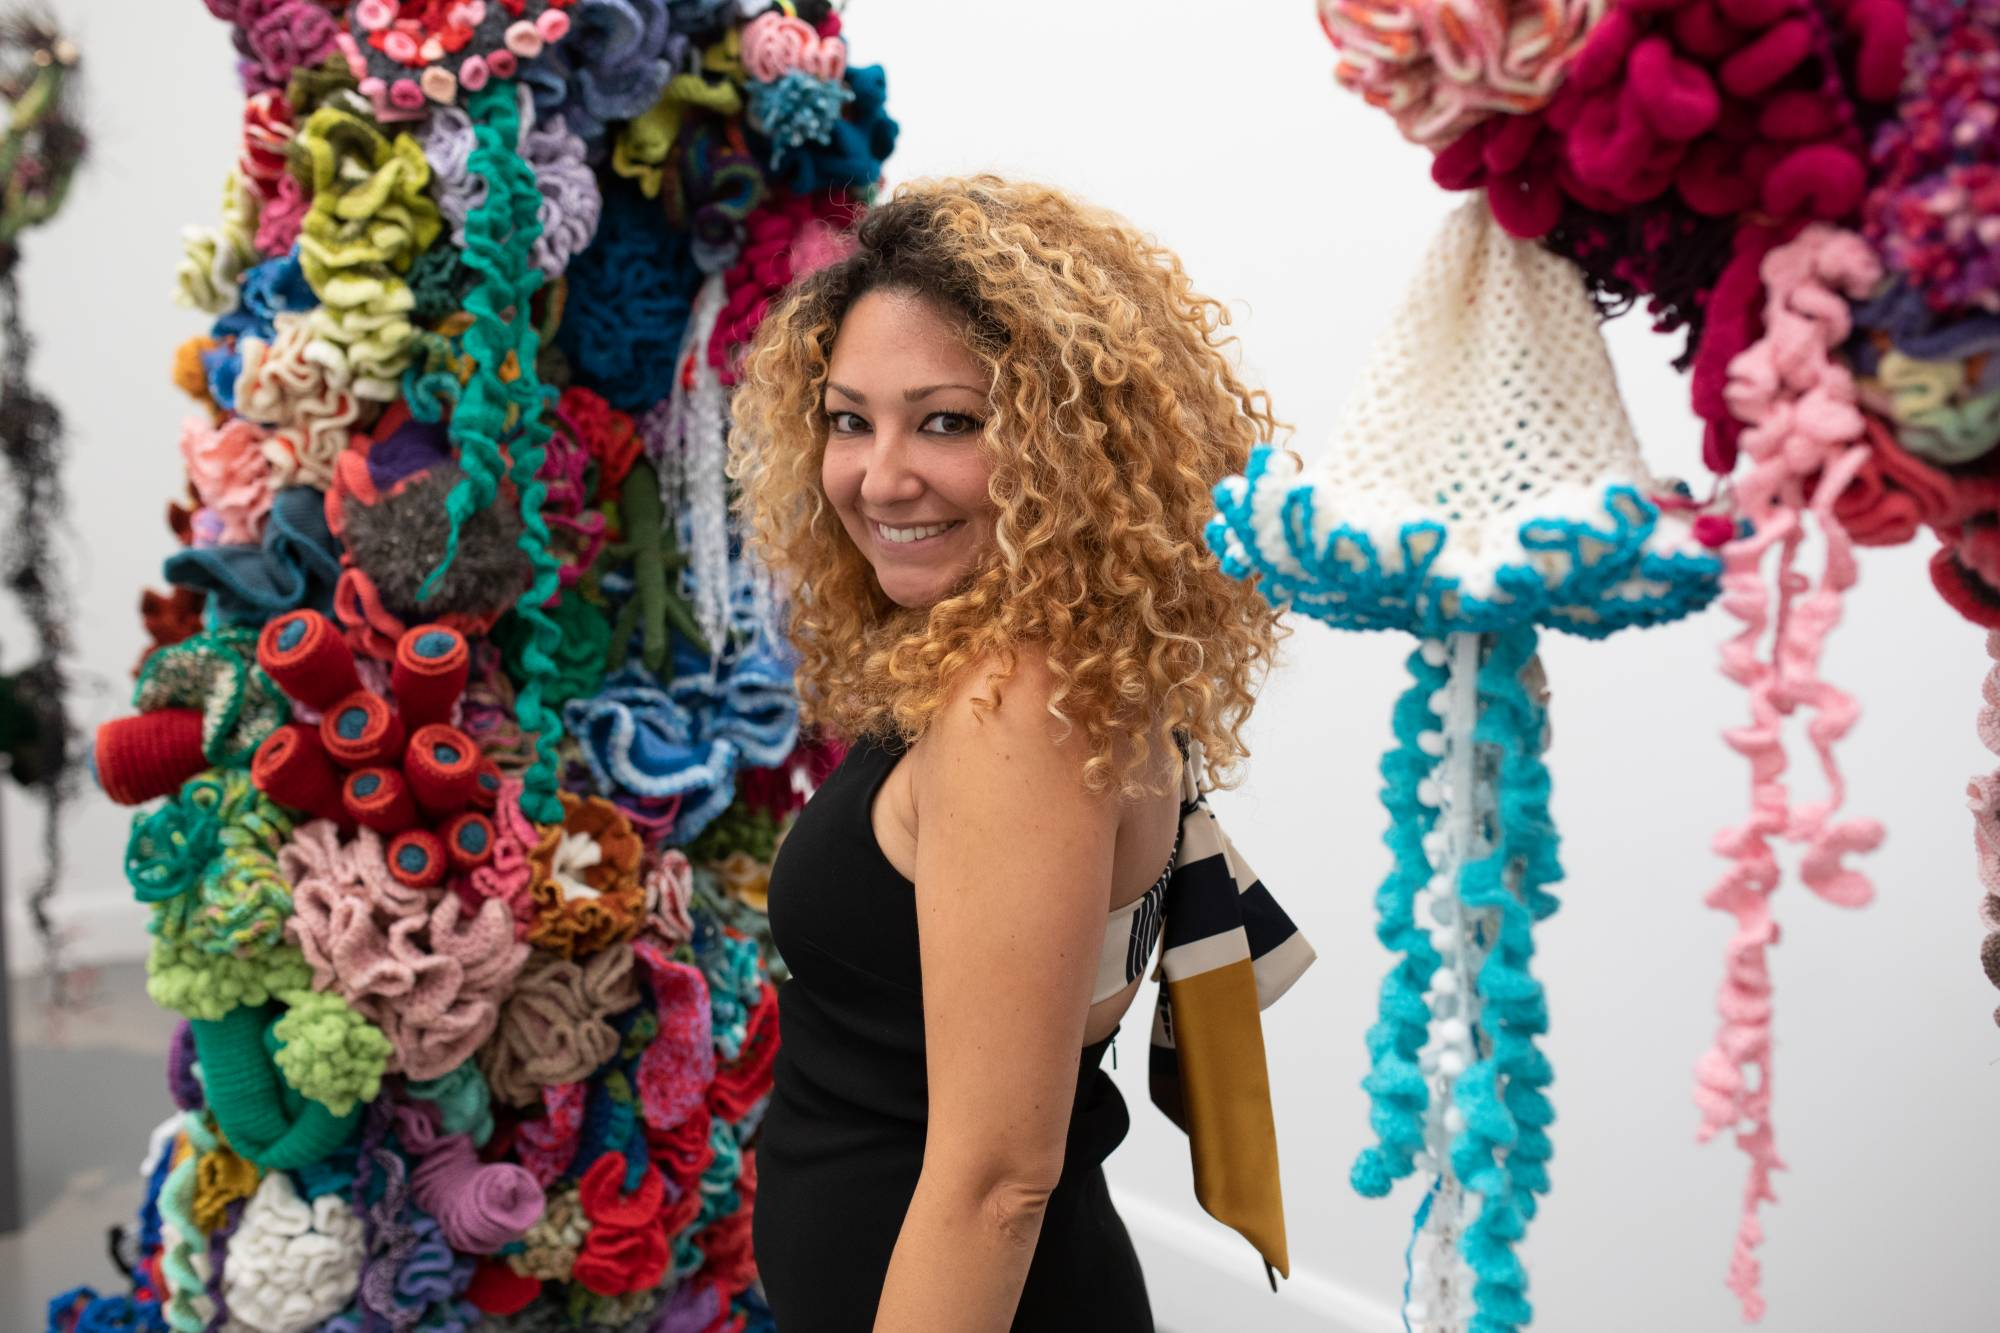 Smiling woman in front of colorful reef sculptures